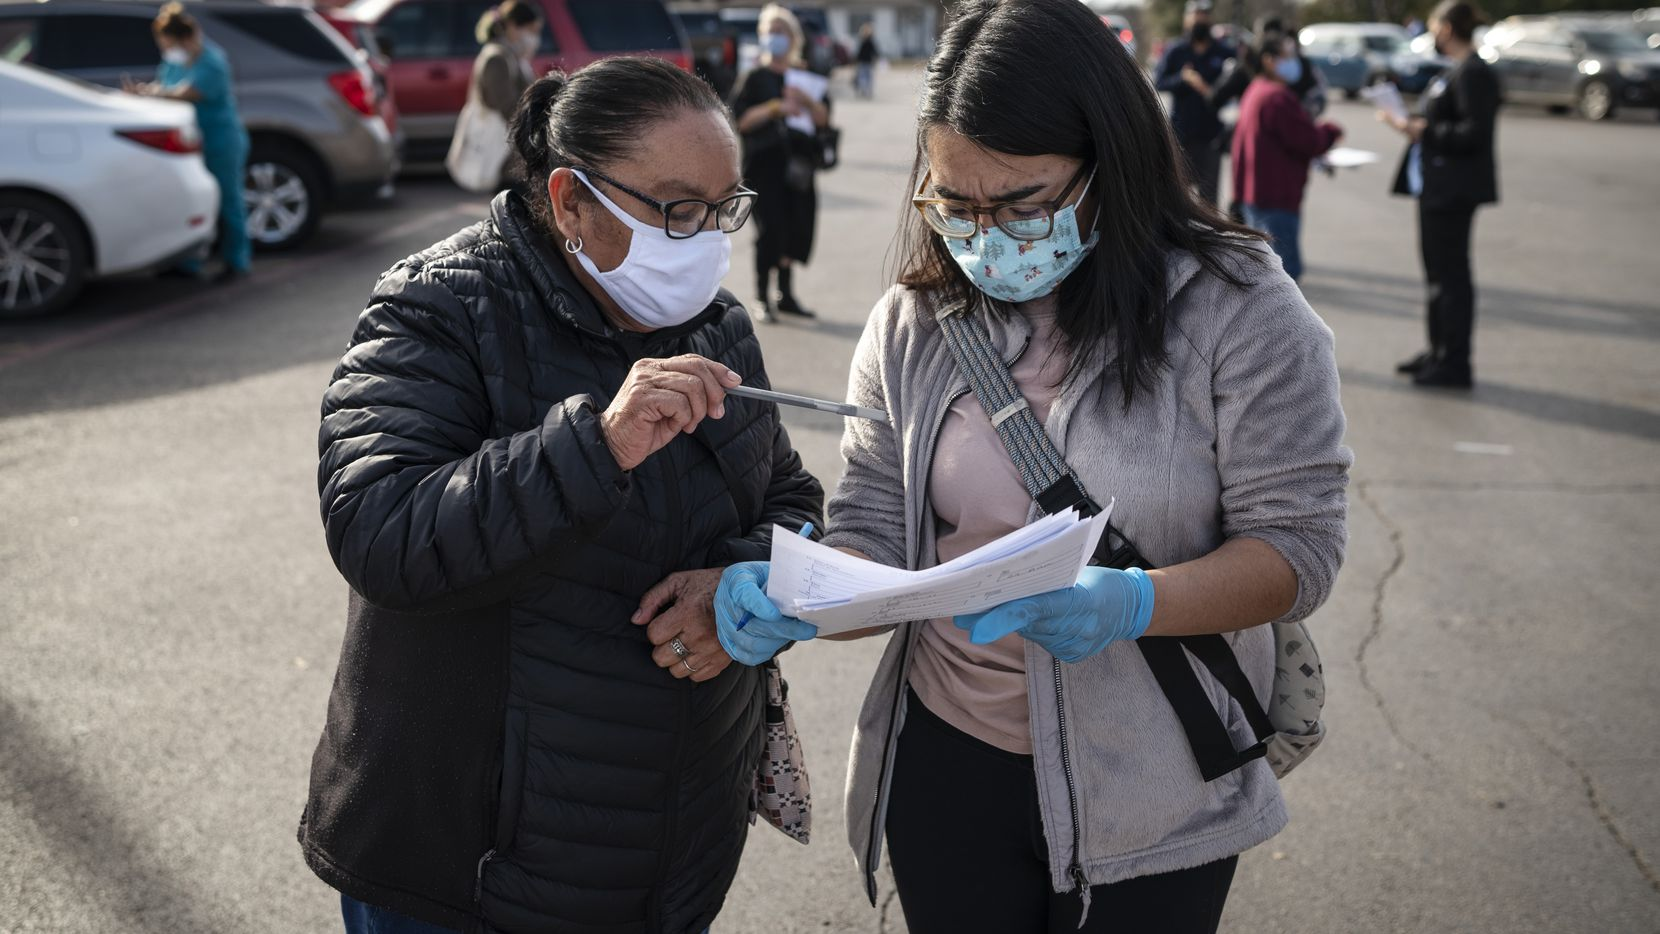 Maria Hernandez, 68, works with registered nurse Ruth Olvera, right, as she helps to register Hernandez for a COVID-19 vaccine during a registration event hosted by Dallas County Health and Human Services outside of a Supermercado Monterrey grocery store in Oak Cliff, on Tuesday, Feb. 02, 2021 in Dallas.